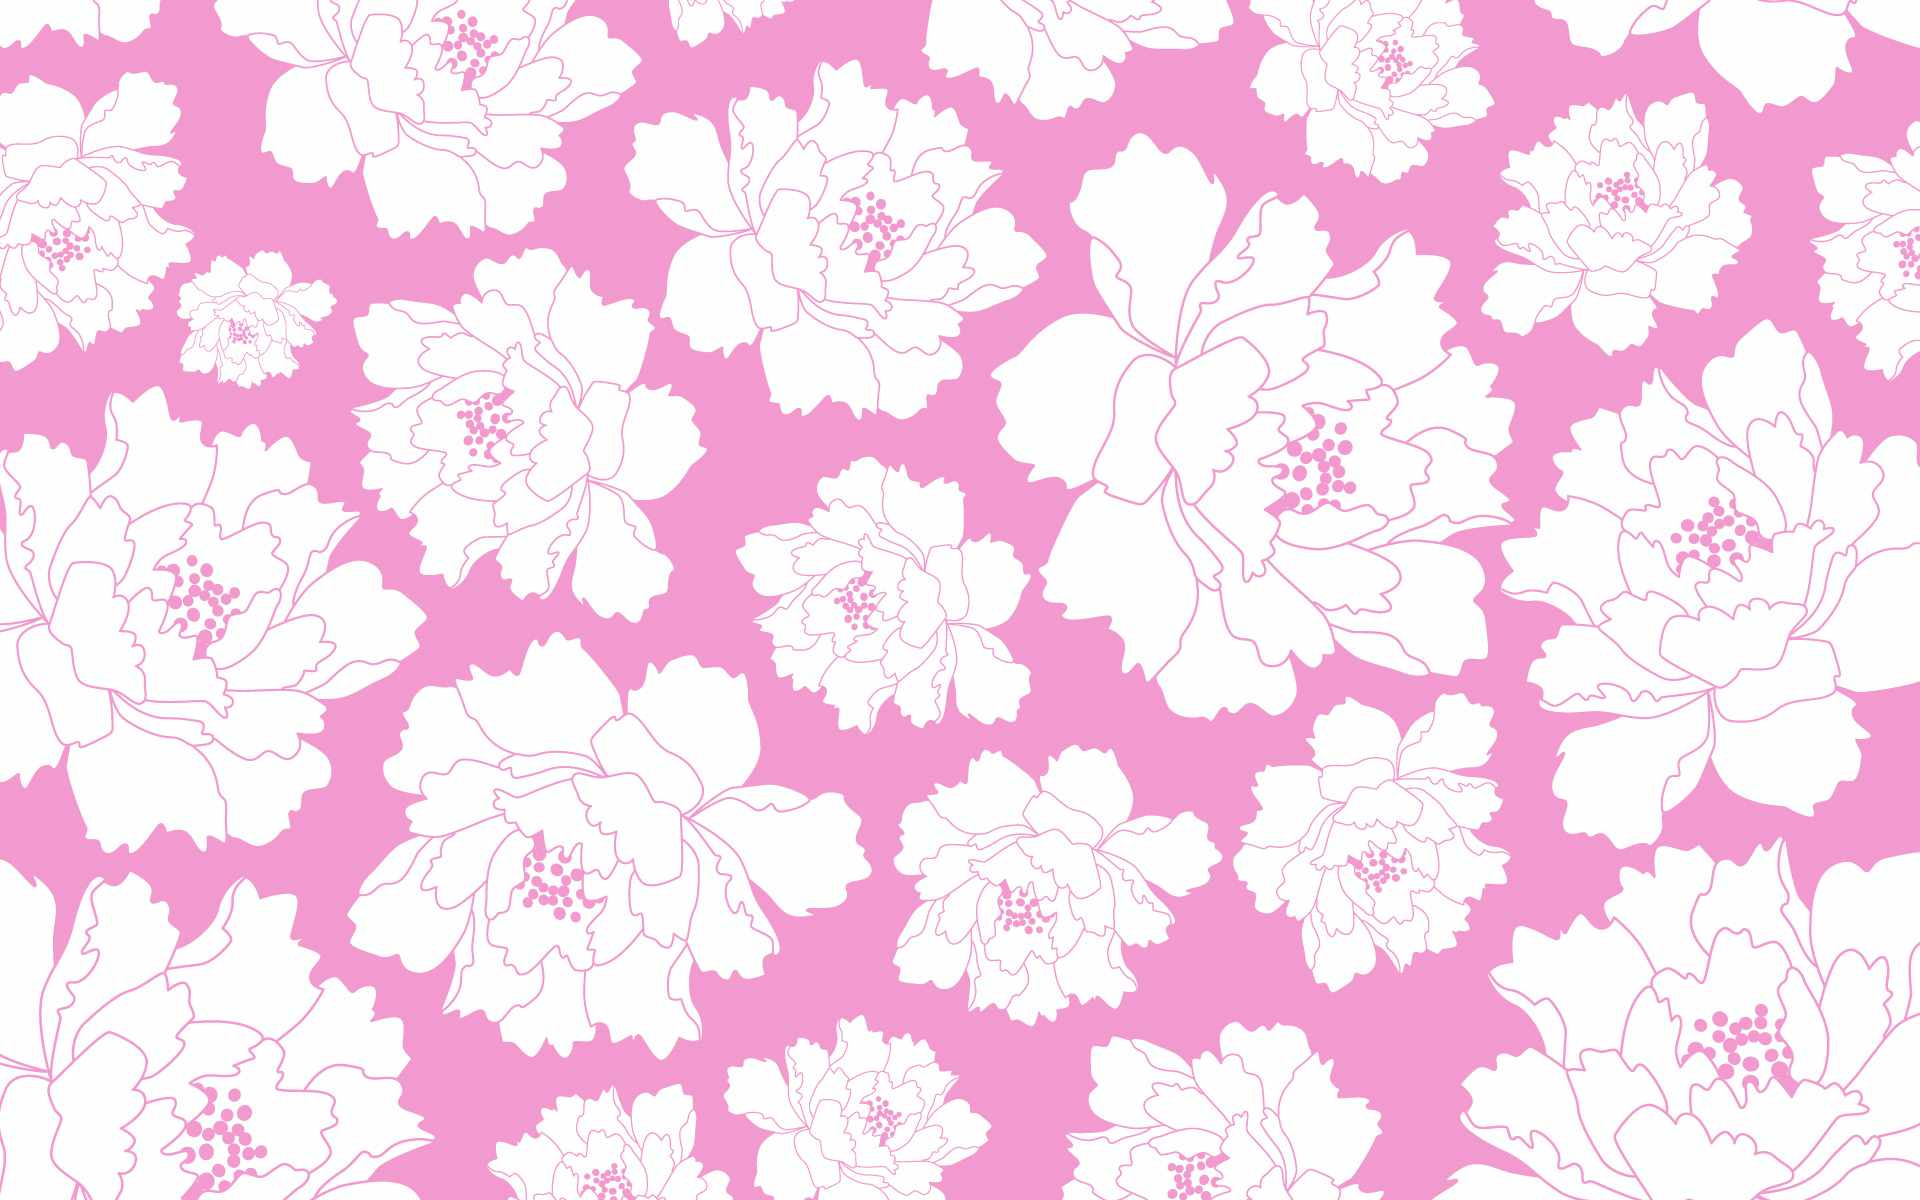 Free Printable Origami Paper Category - Page 1 - Paper Kawaii | 1200x1920